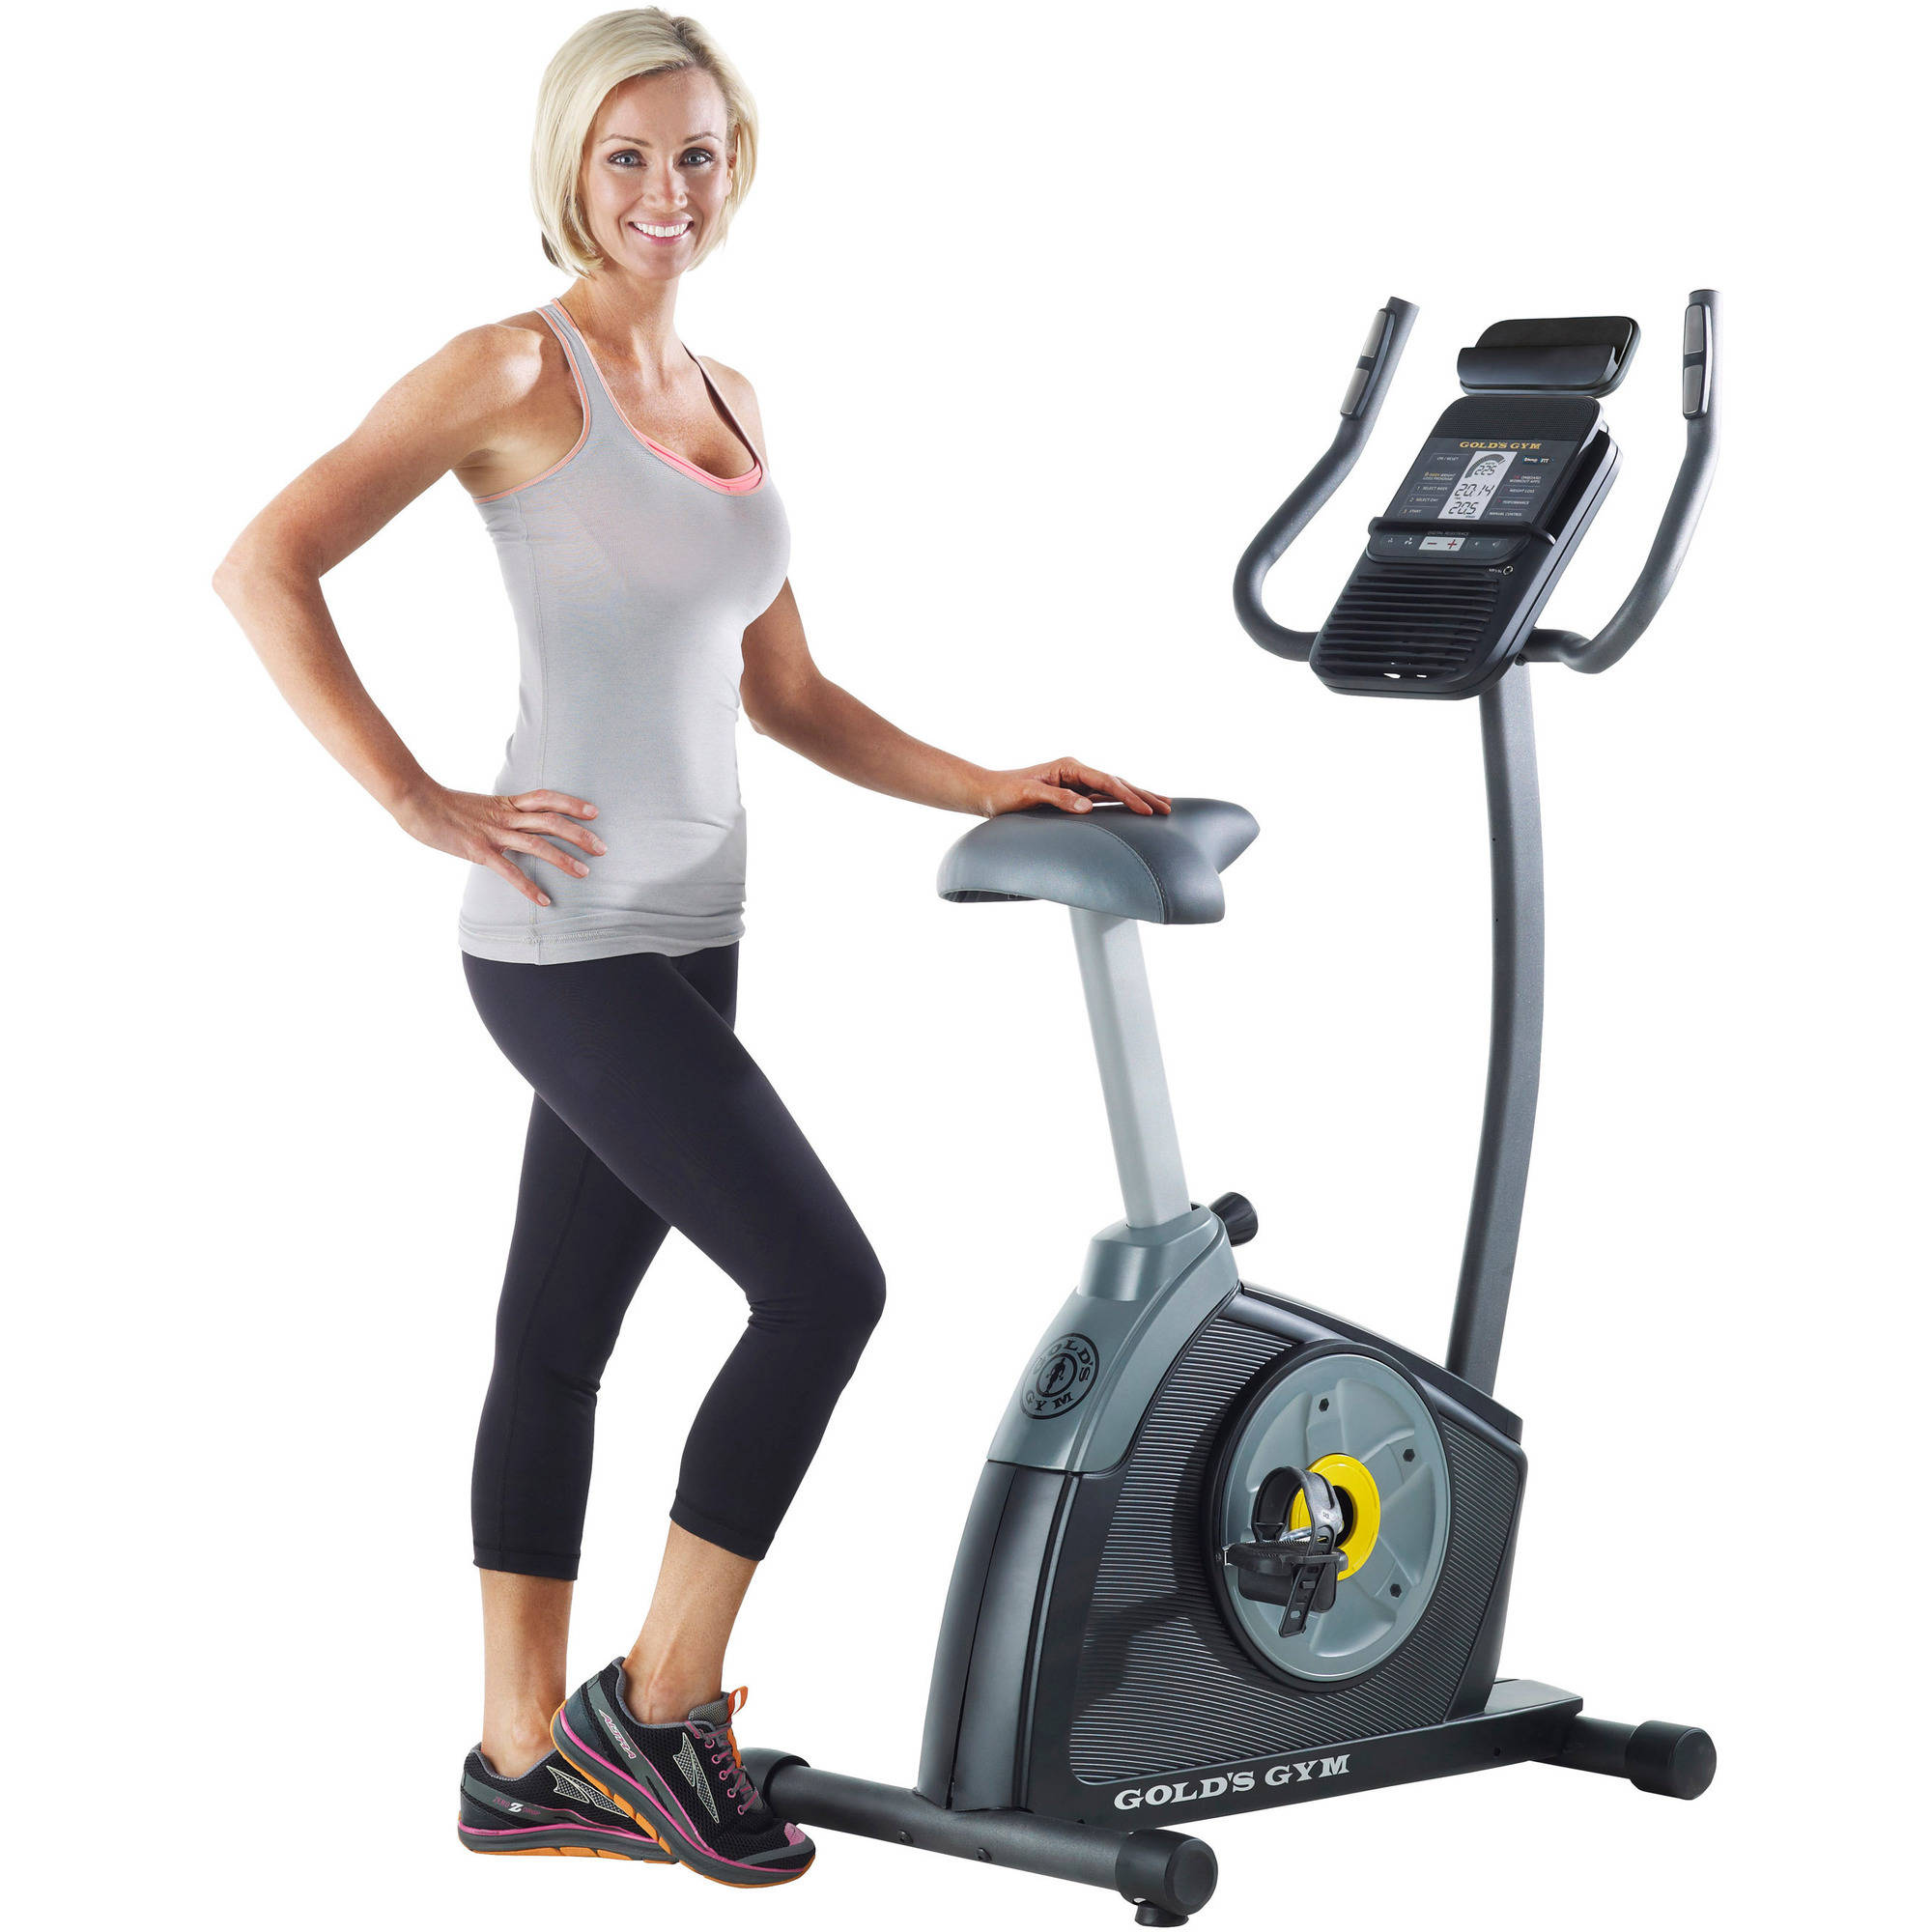 Gold's Gym Cycle Trainer 300 Ci Upright Exercise Bike ...